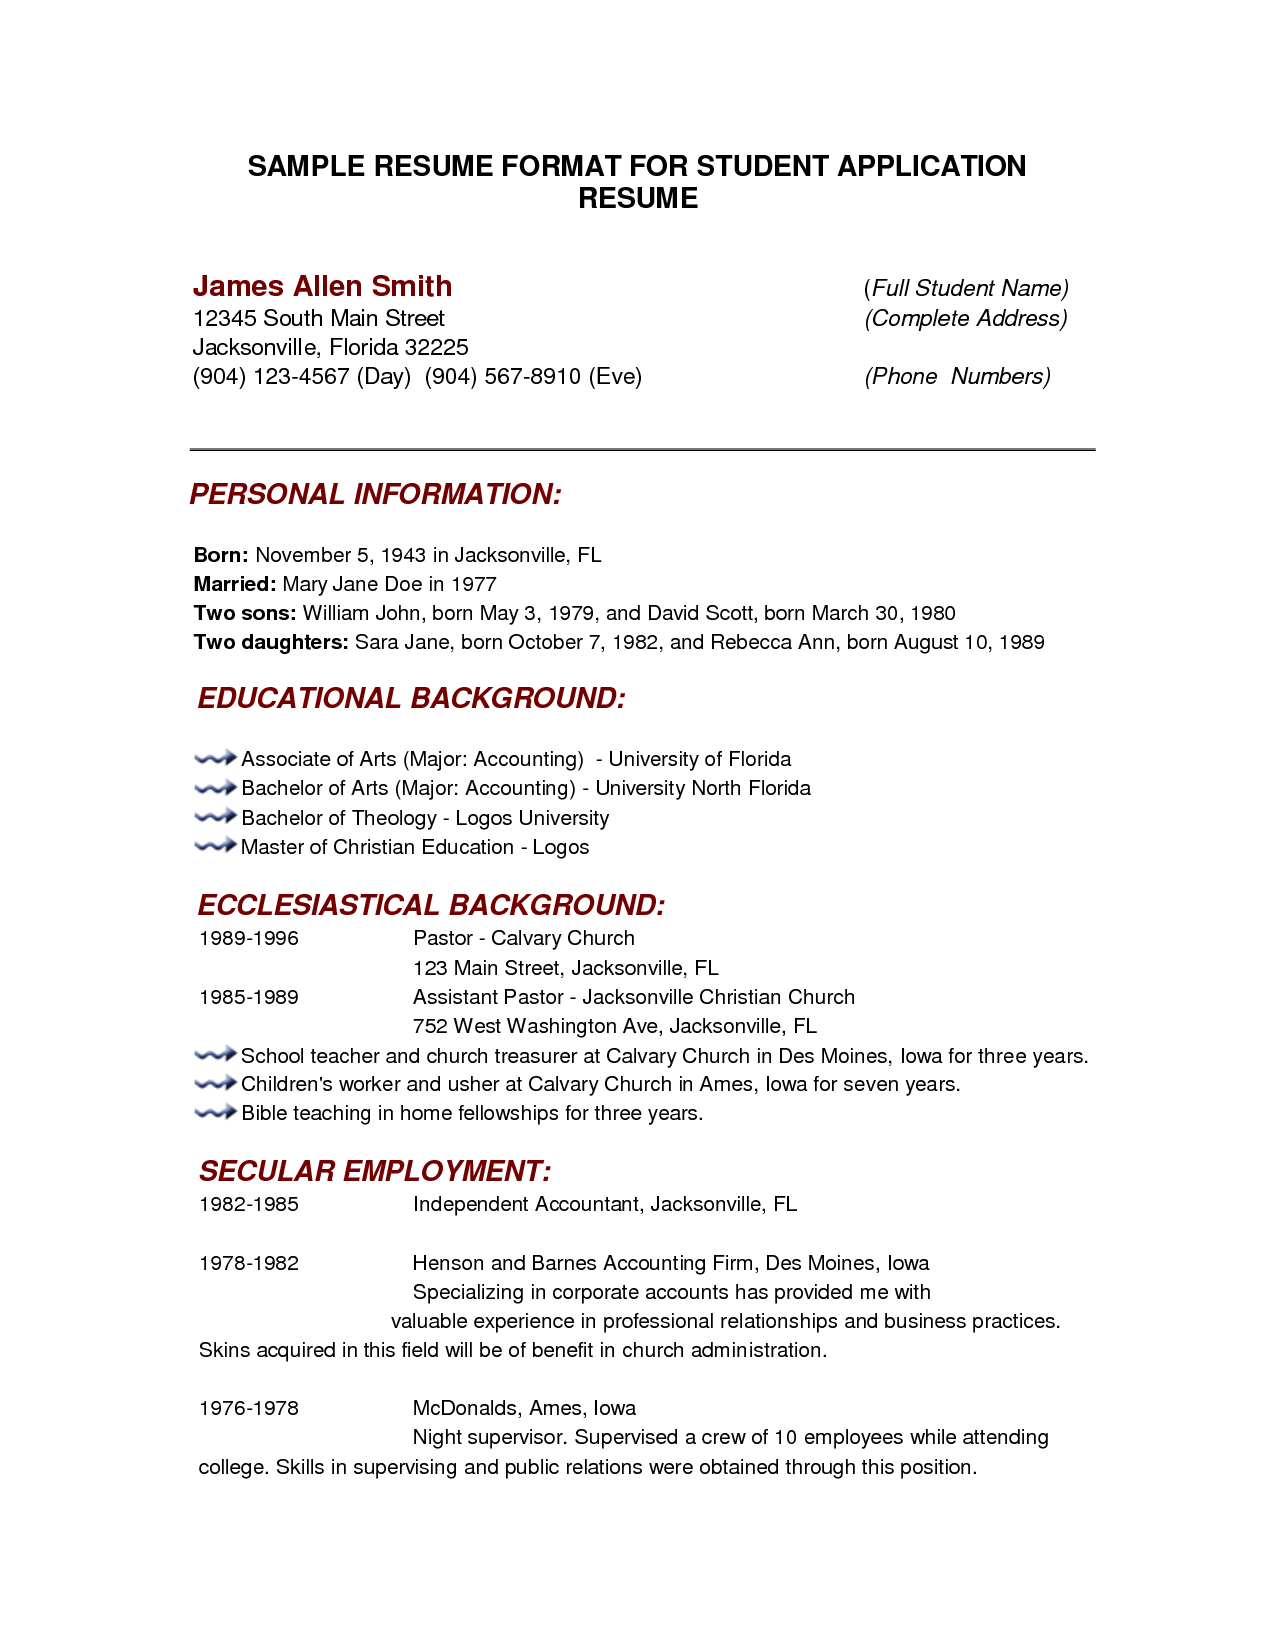 Resume Format Template Unique Pinjobresume On Resume Career Termplate Free  Pinterest